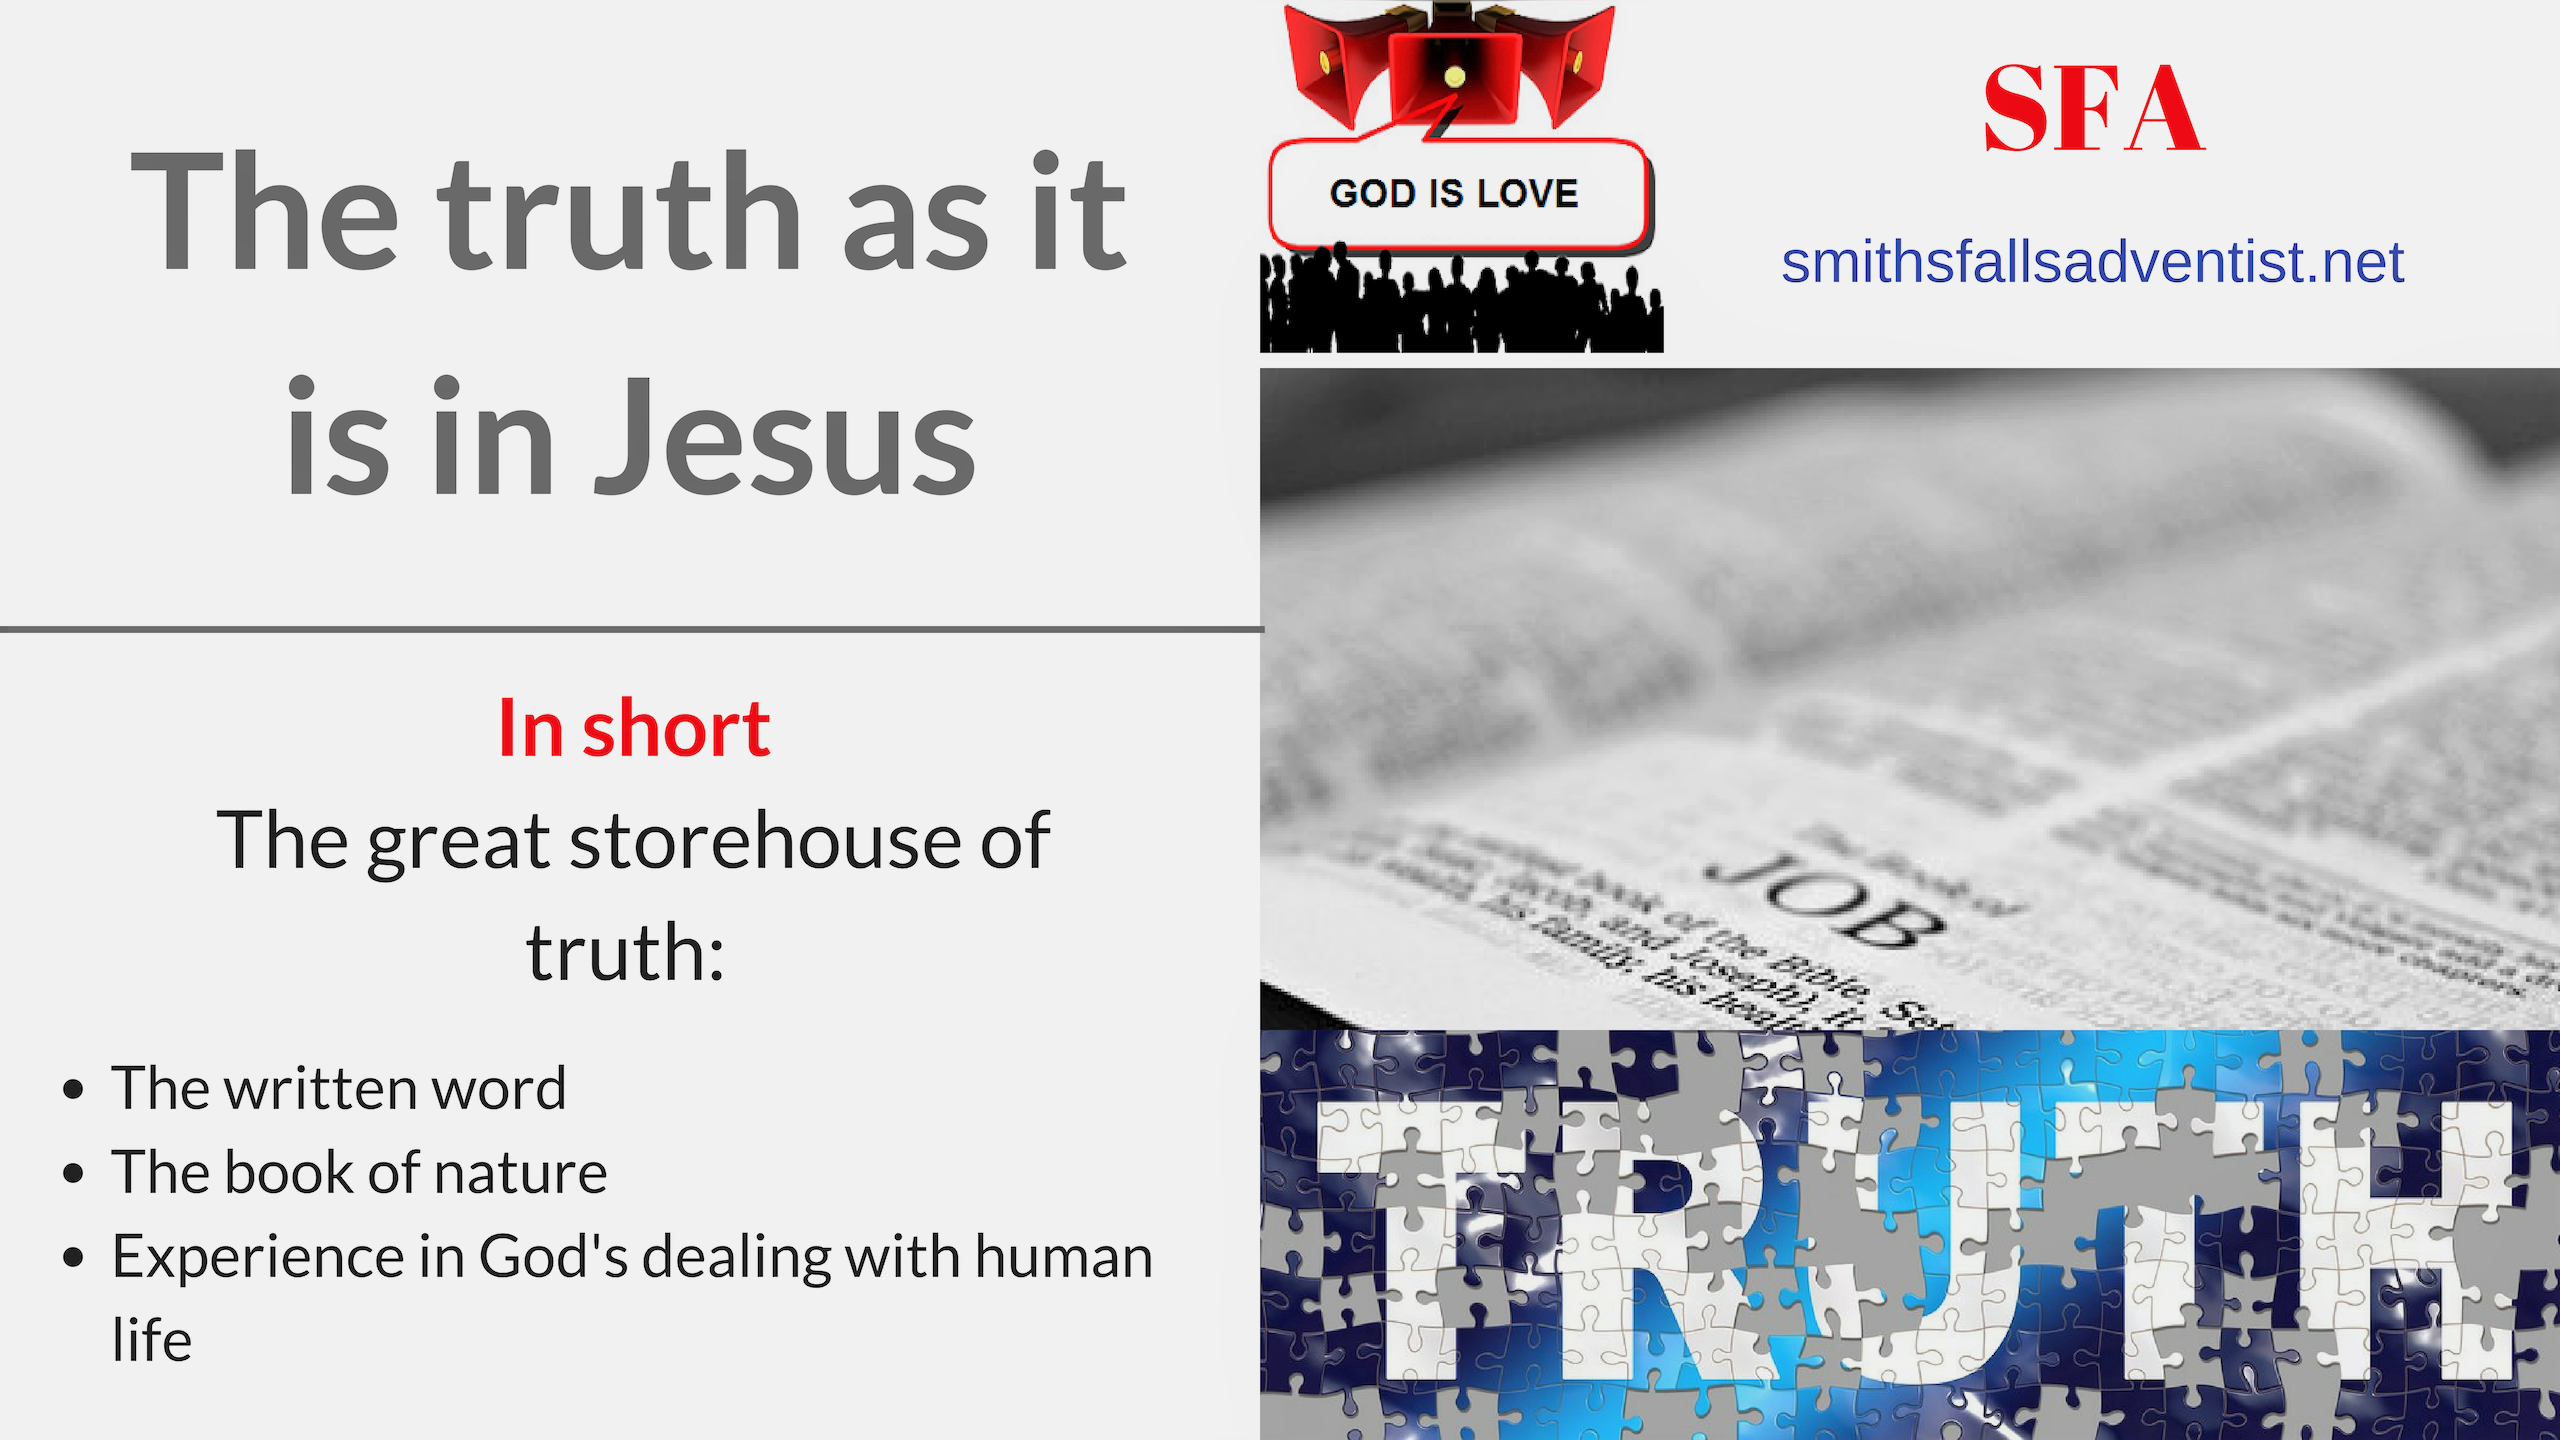 Title-The-truth-as-it-is-in-Jesus-text-logo